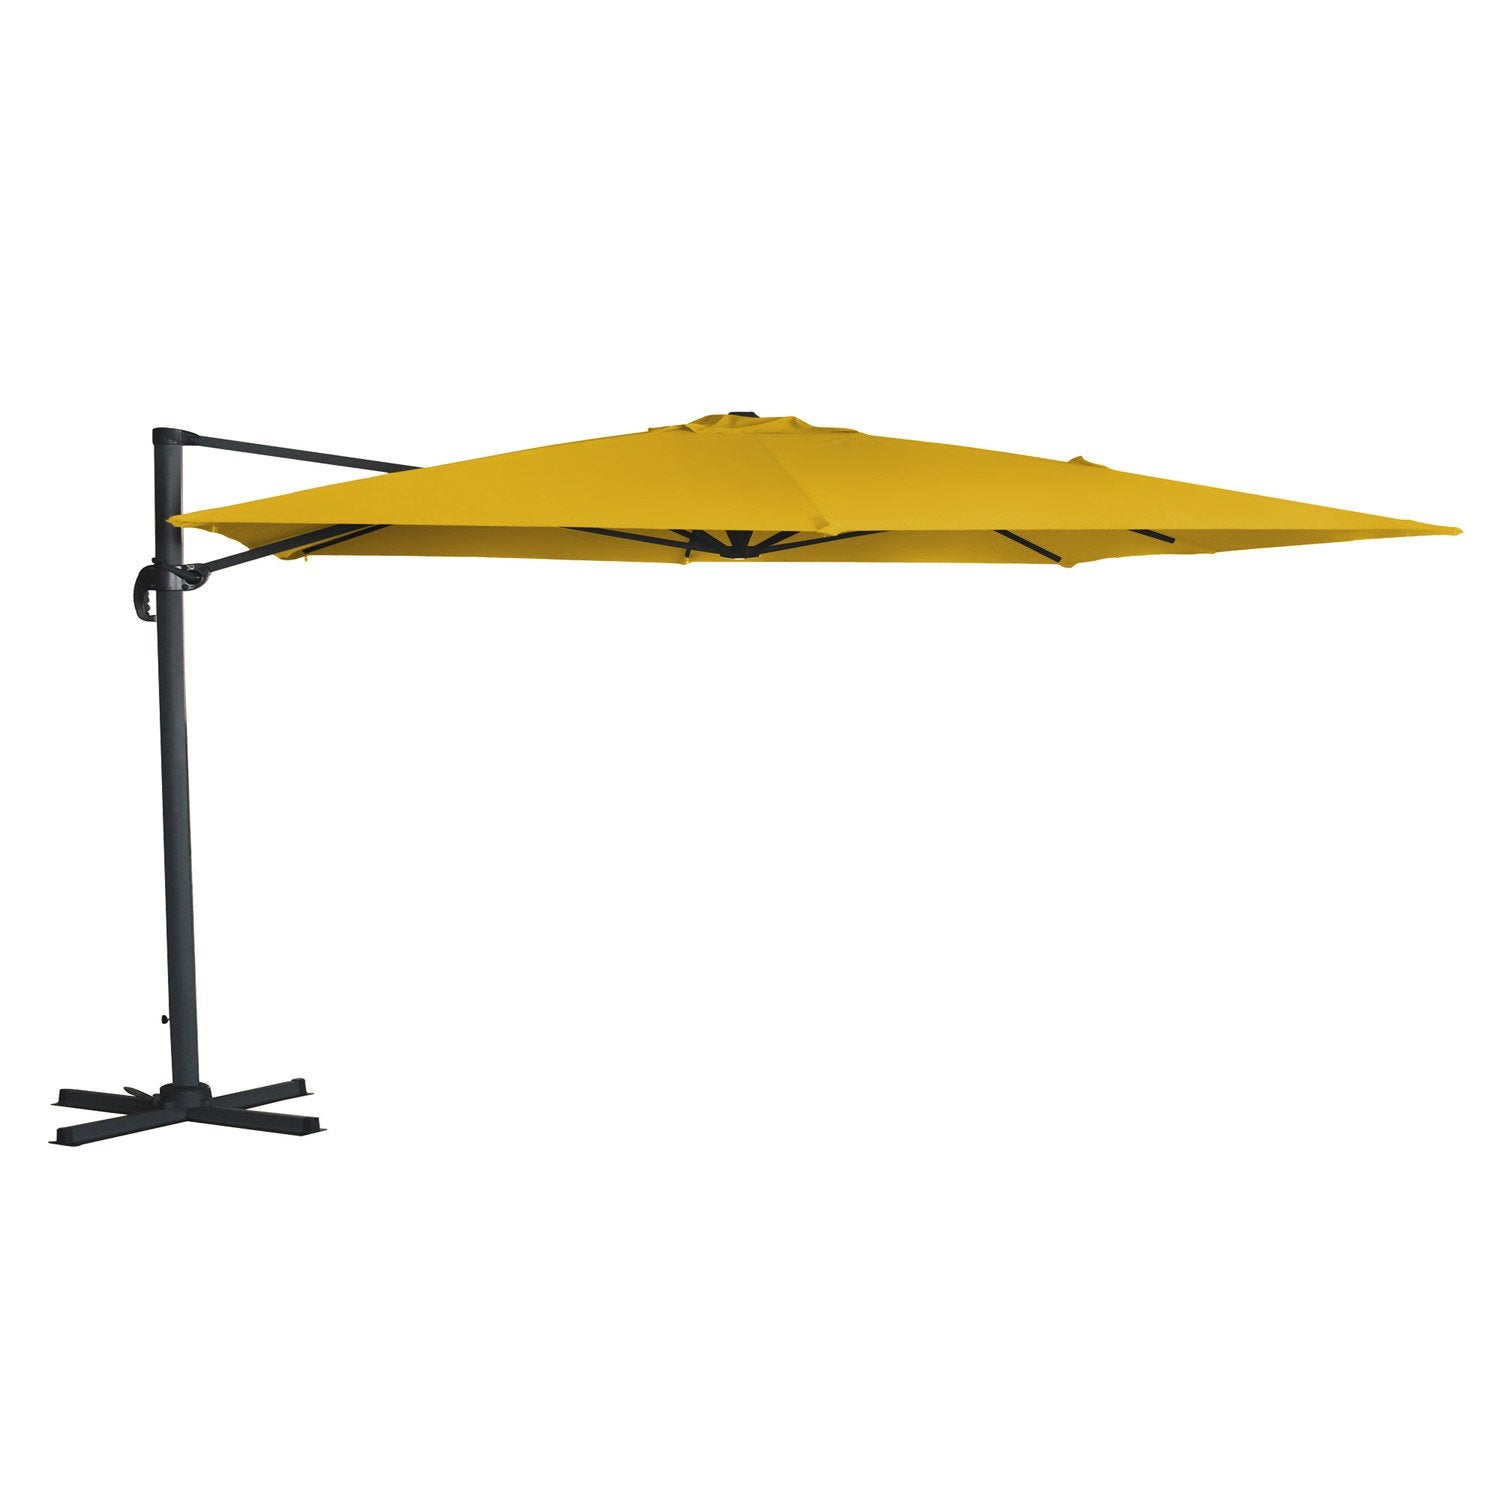 Parasol d port hera jaune rectangulaire x cm - Parasol deporte inclinable leroy merlin ...